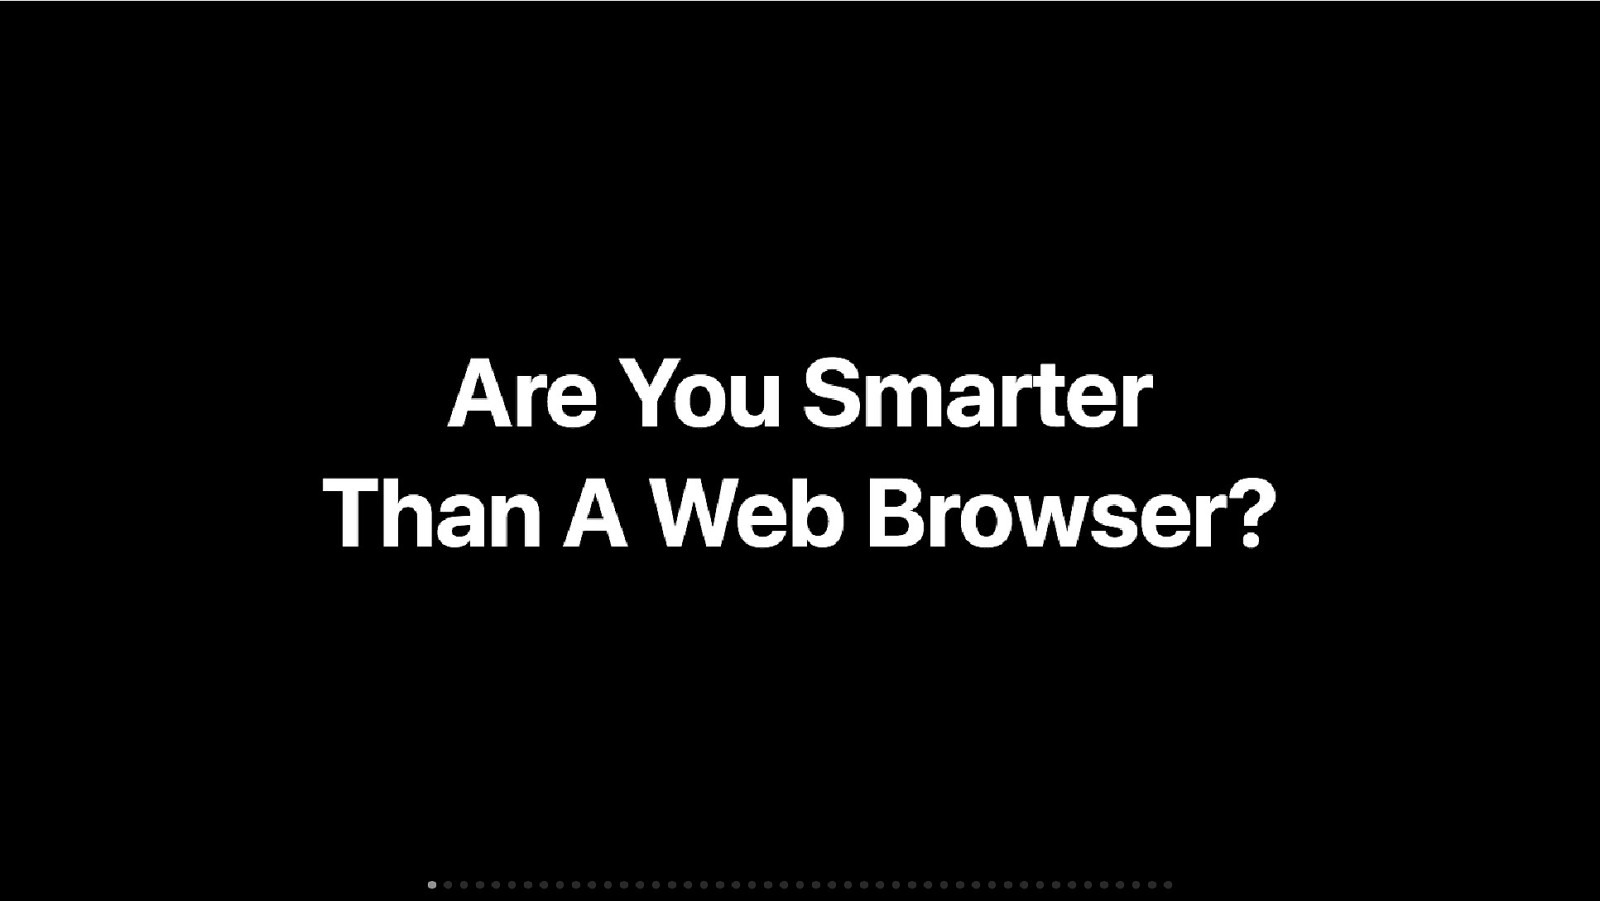 Are You Smarter Than A Web Browser?